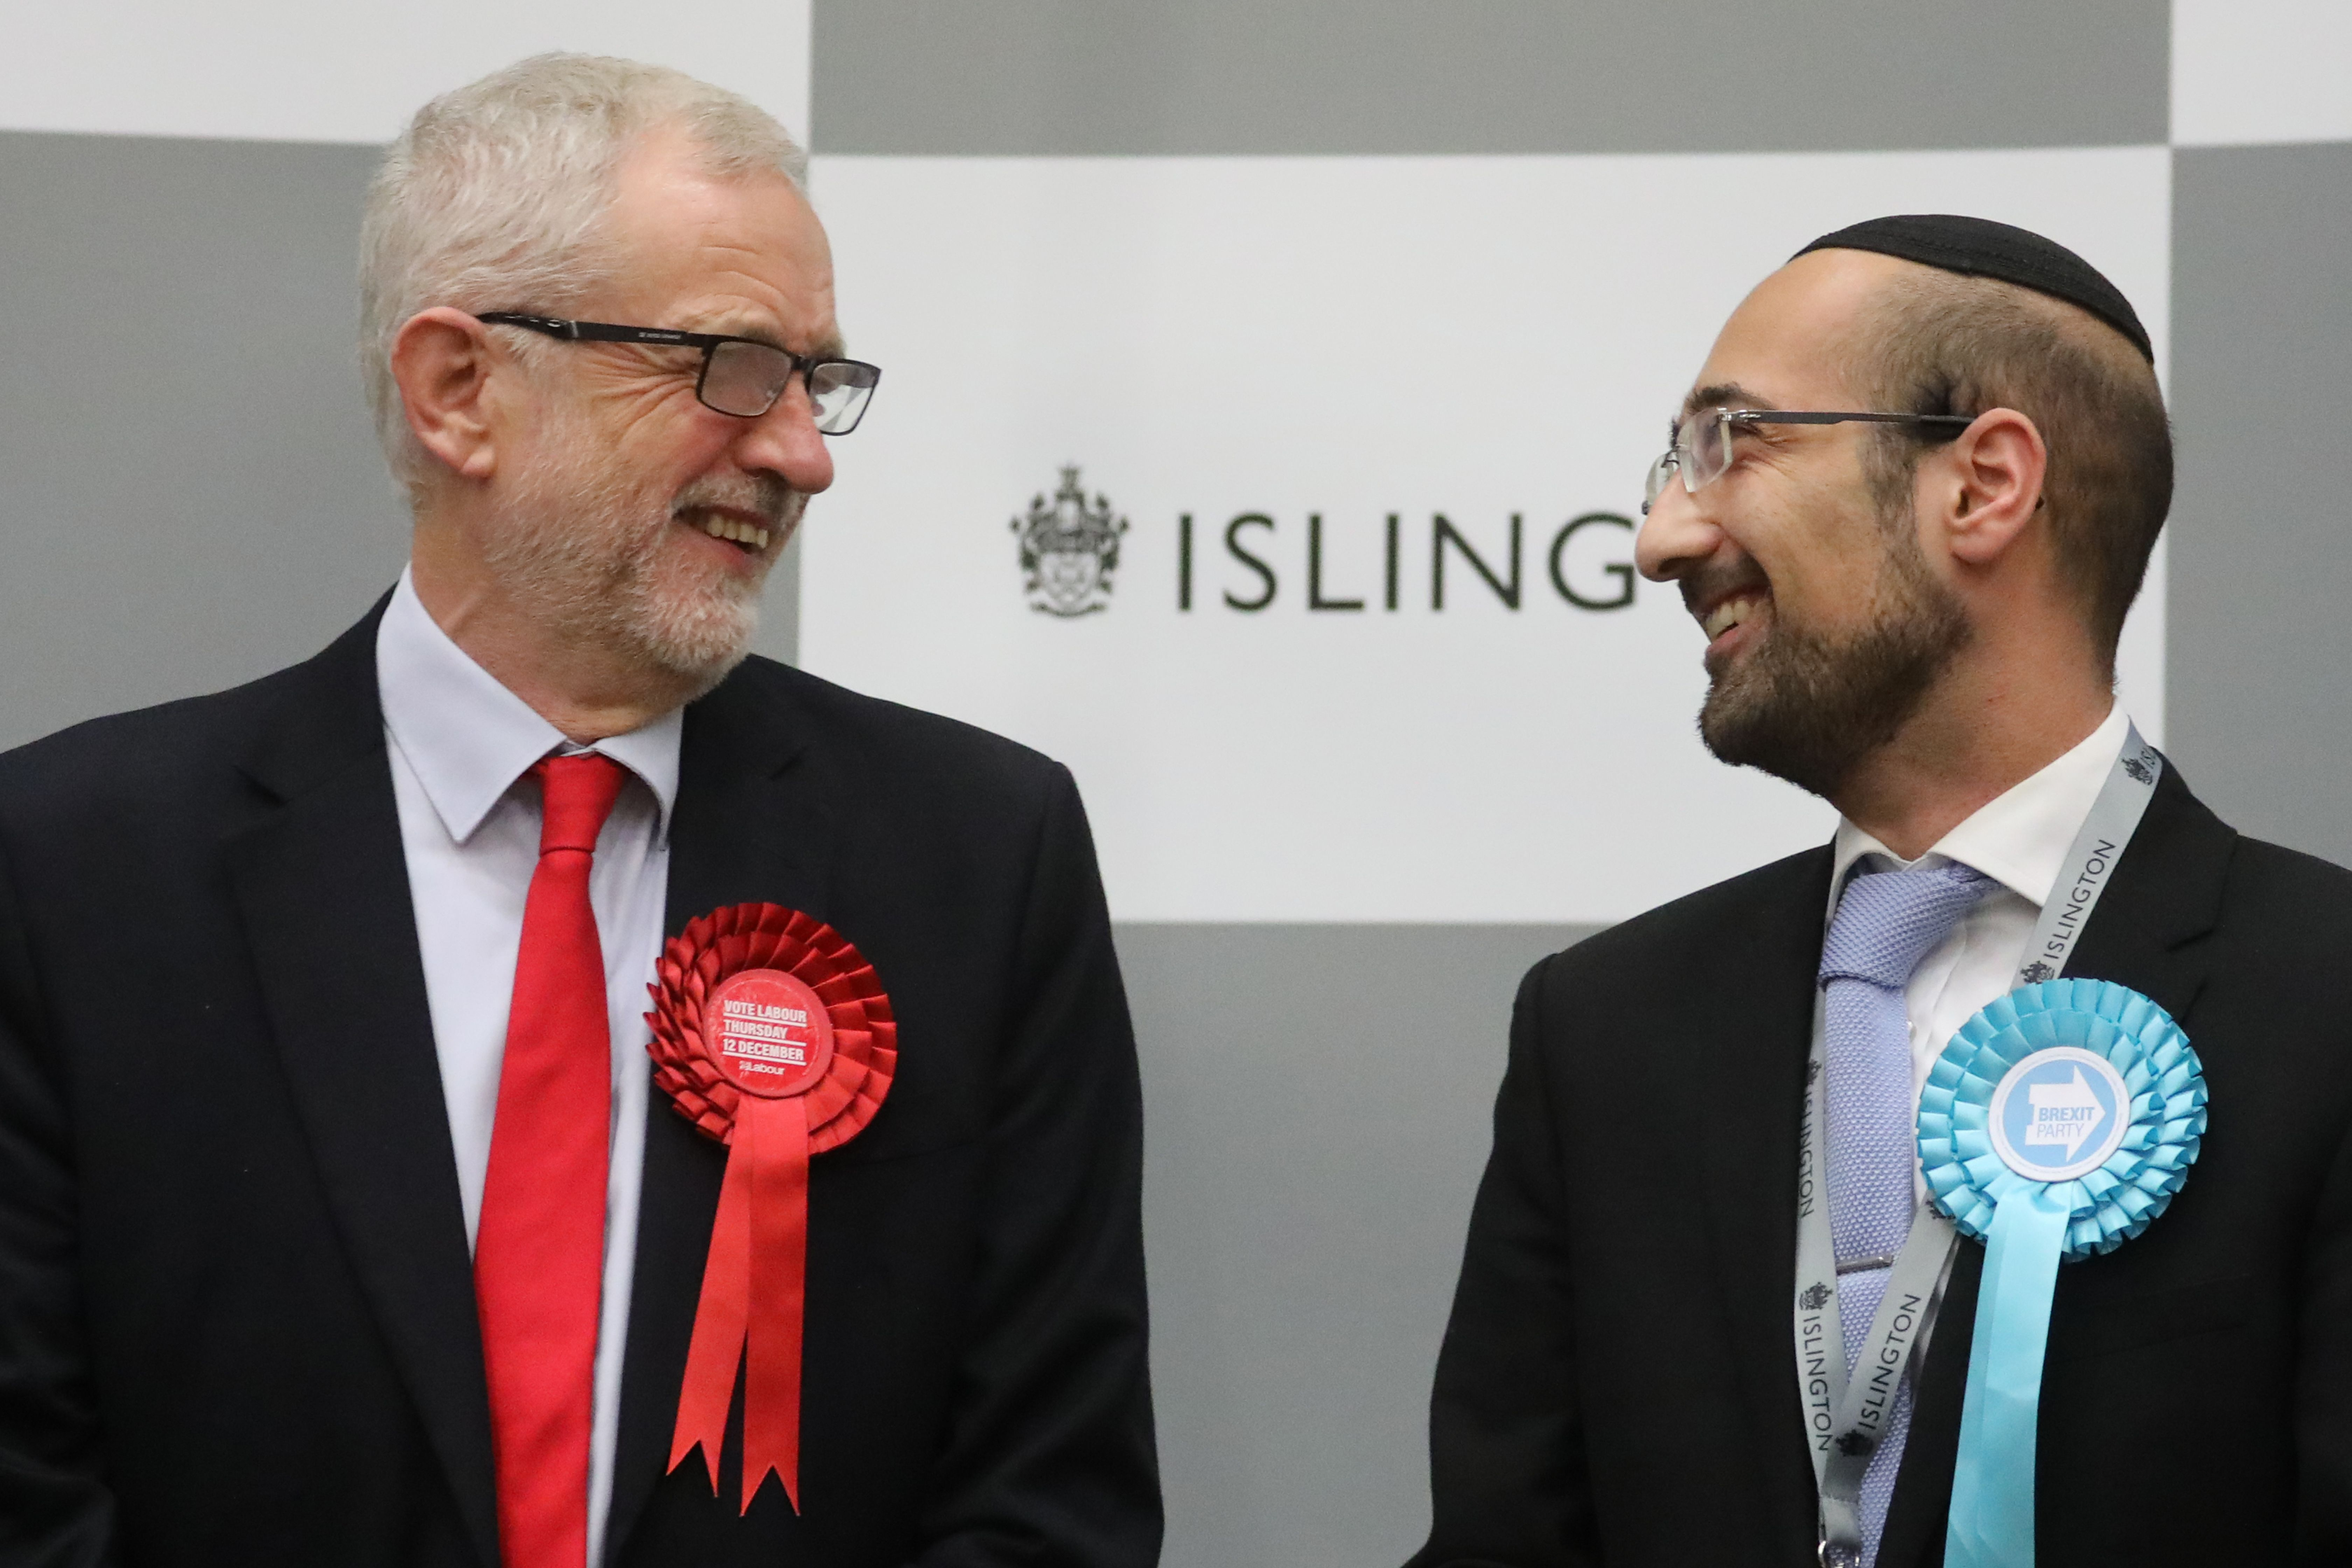 Britain's opposition Labour Party leader Jeremy Corbyn (L) exchanges a laugh with the Brexit Party candidate Yosef David  (R) as they stand on the stage to hear the results of the race to be MP for Islington North at the count centre in Islington, north London, on December 13, 2019 as part of the UK general election. (Photo by ISABEL INFANTES / AFP) (Photo by ISABEL INFANTES/AFP via Getty Images)